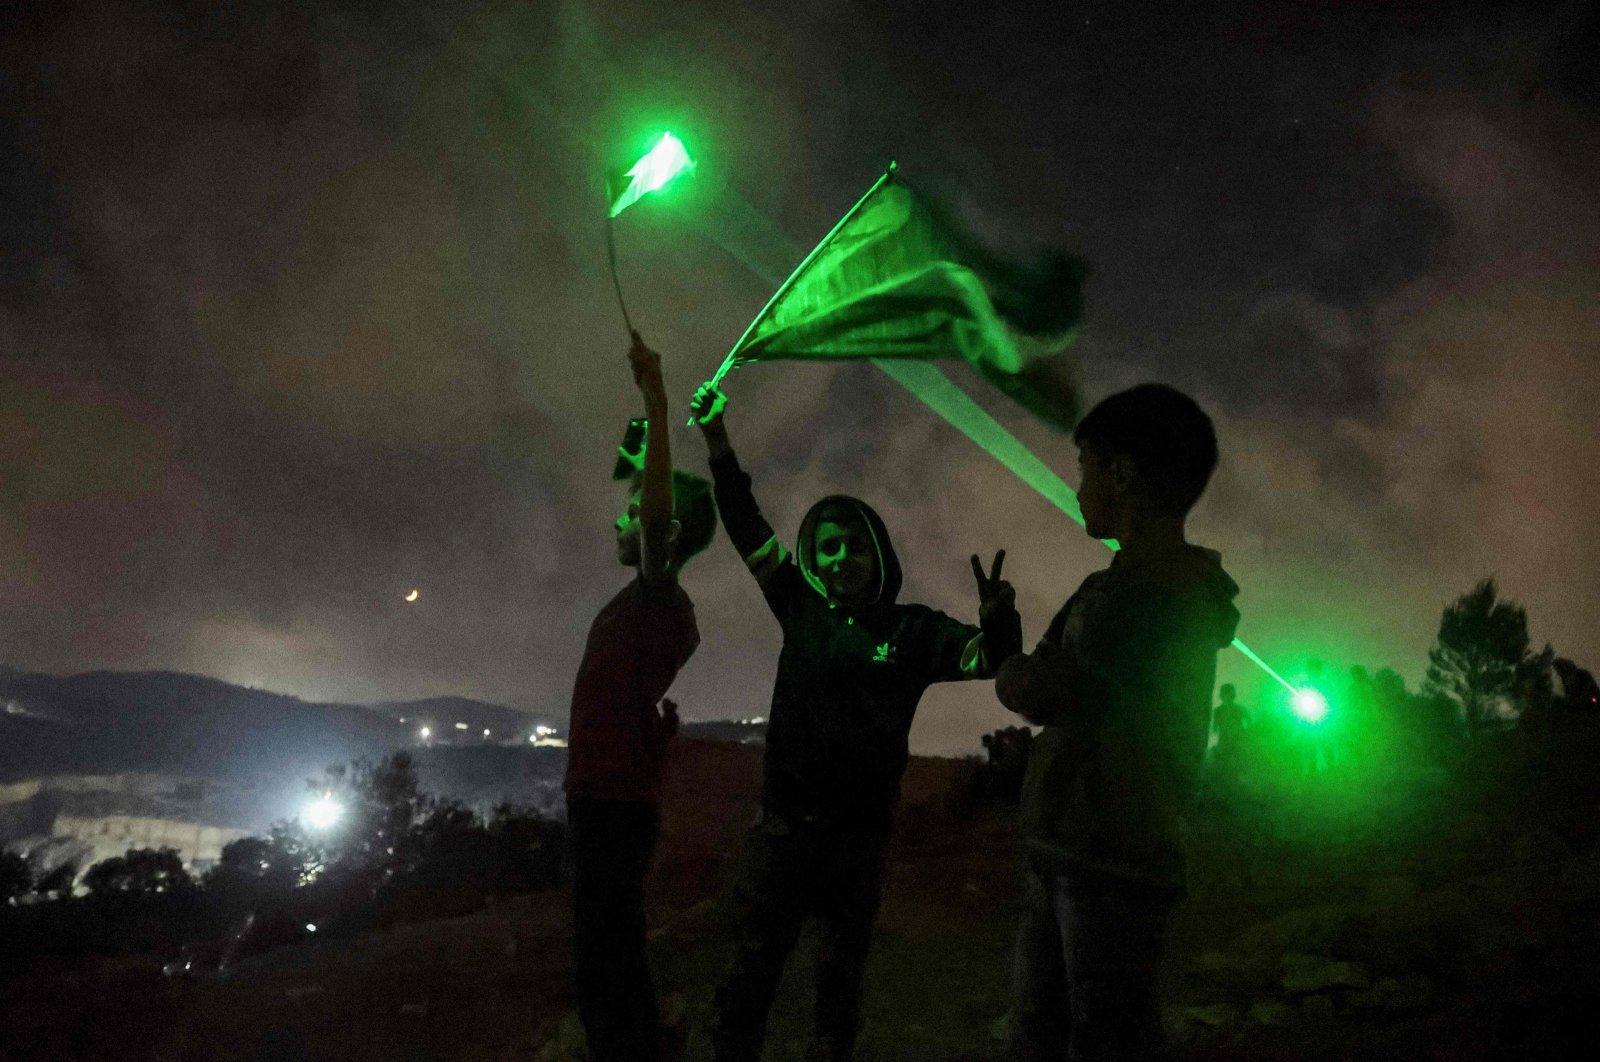 Young Palestinian protesters use laser torches during a demonstration against the Israeli settlers' outpost of Eviatar, in the town of Beita, occupied West Bank, Palestine, July 13, 2021. (AFP Photo)